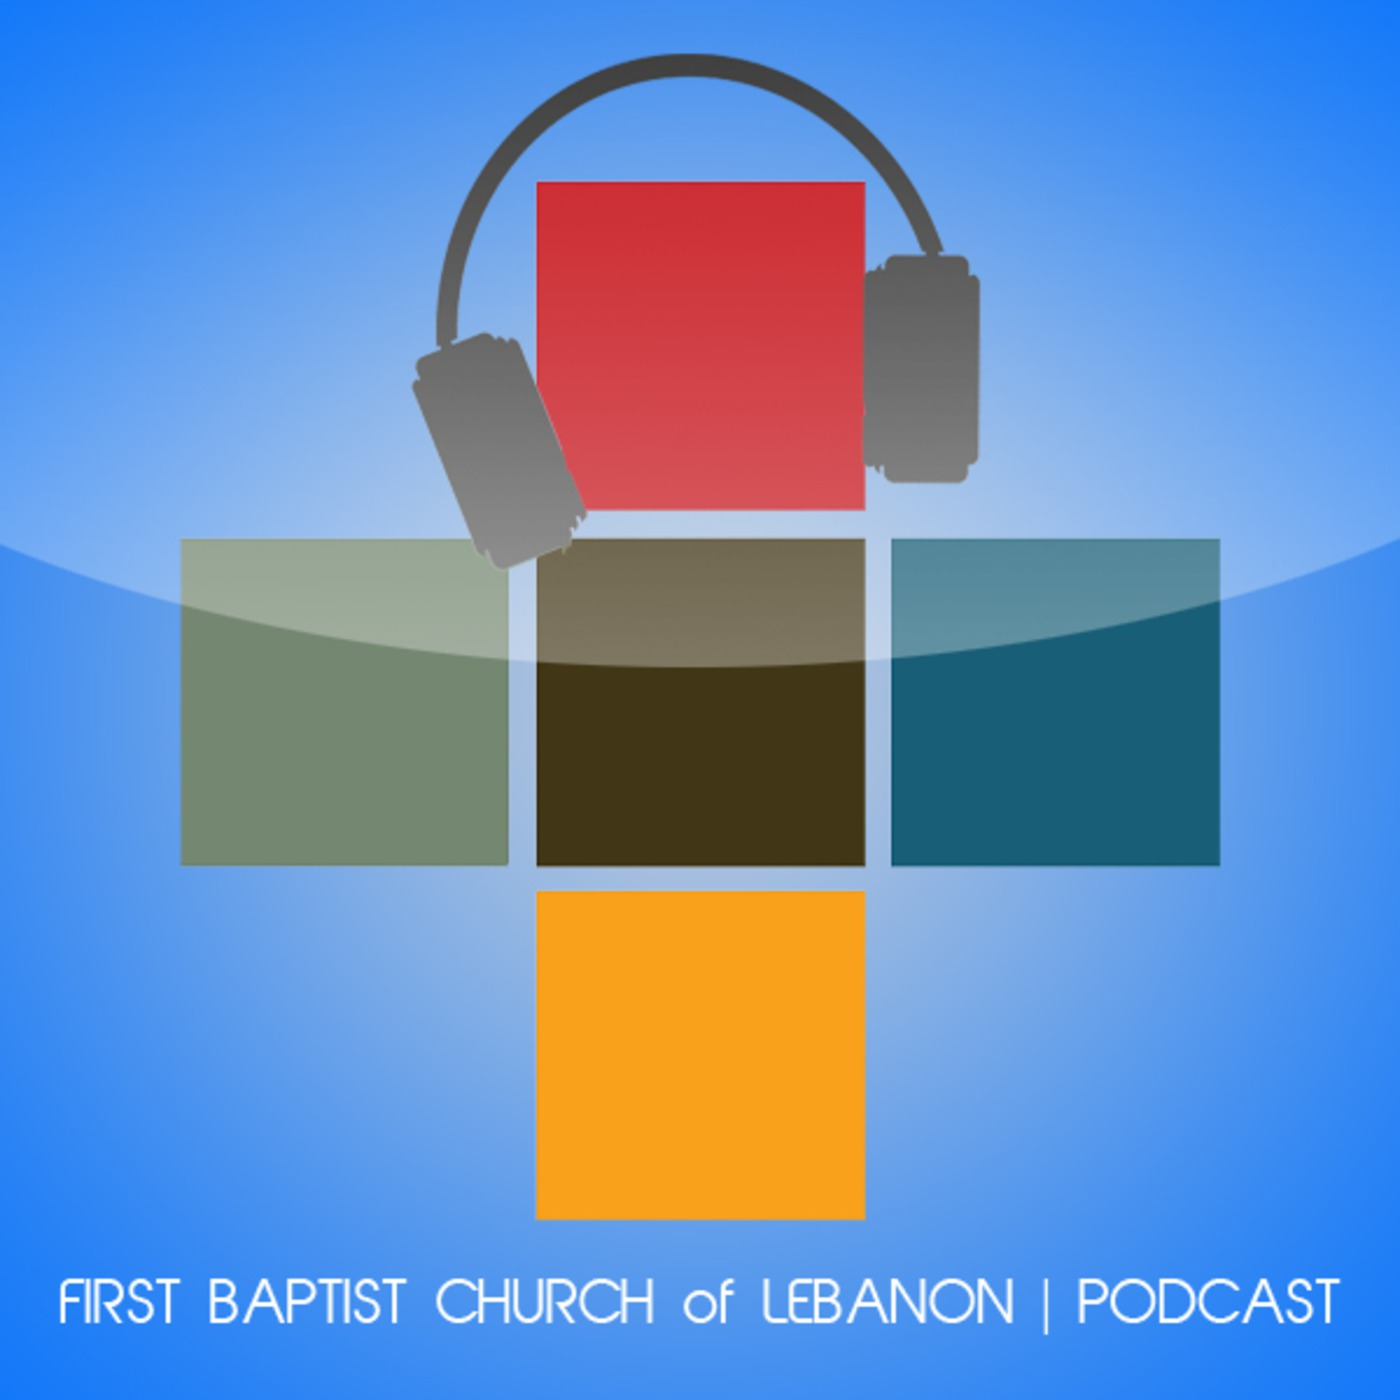 First Baptist Church Lebanon's Podcast